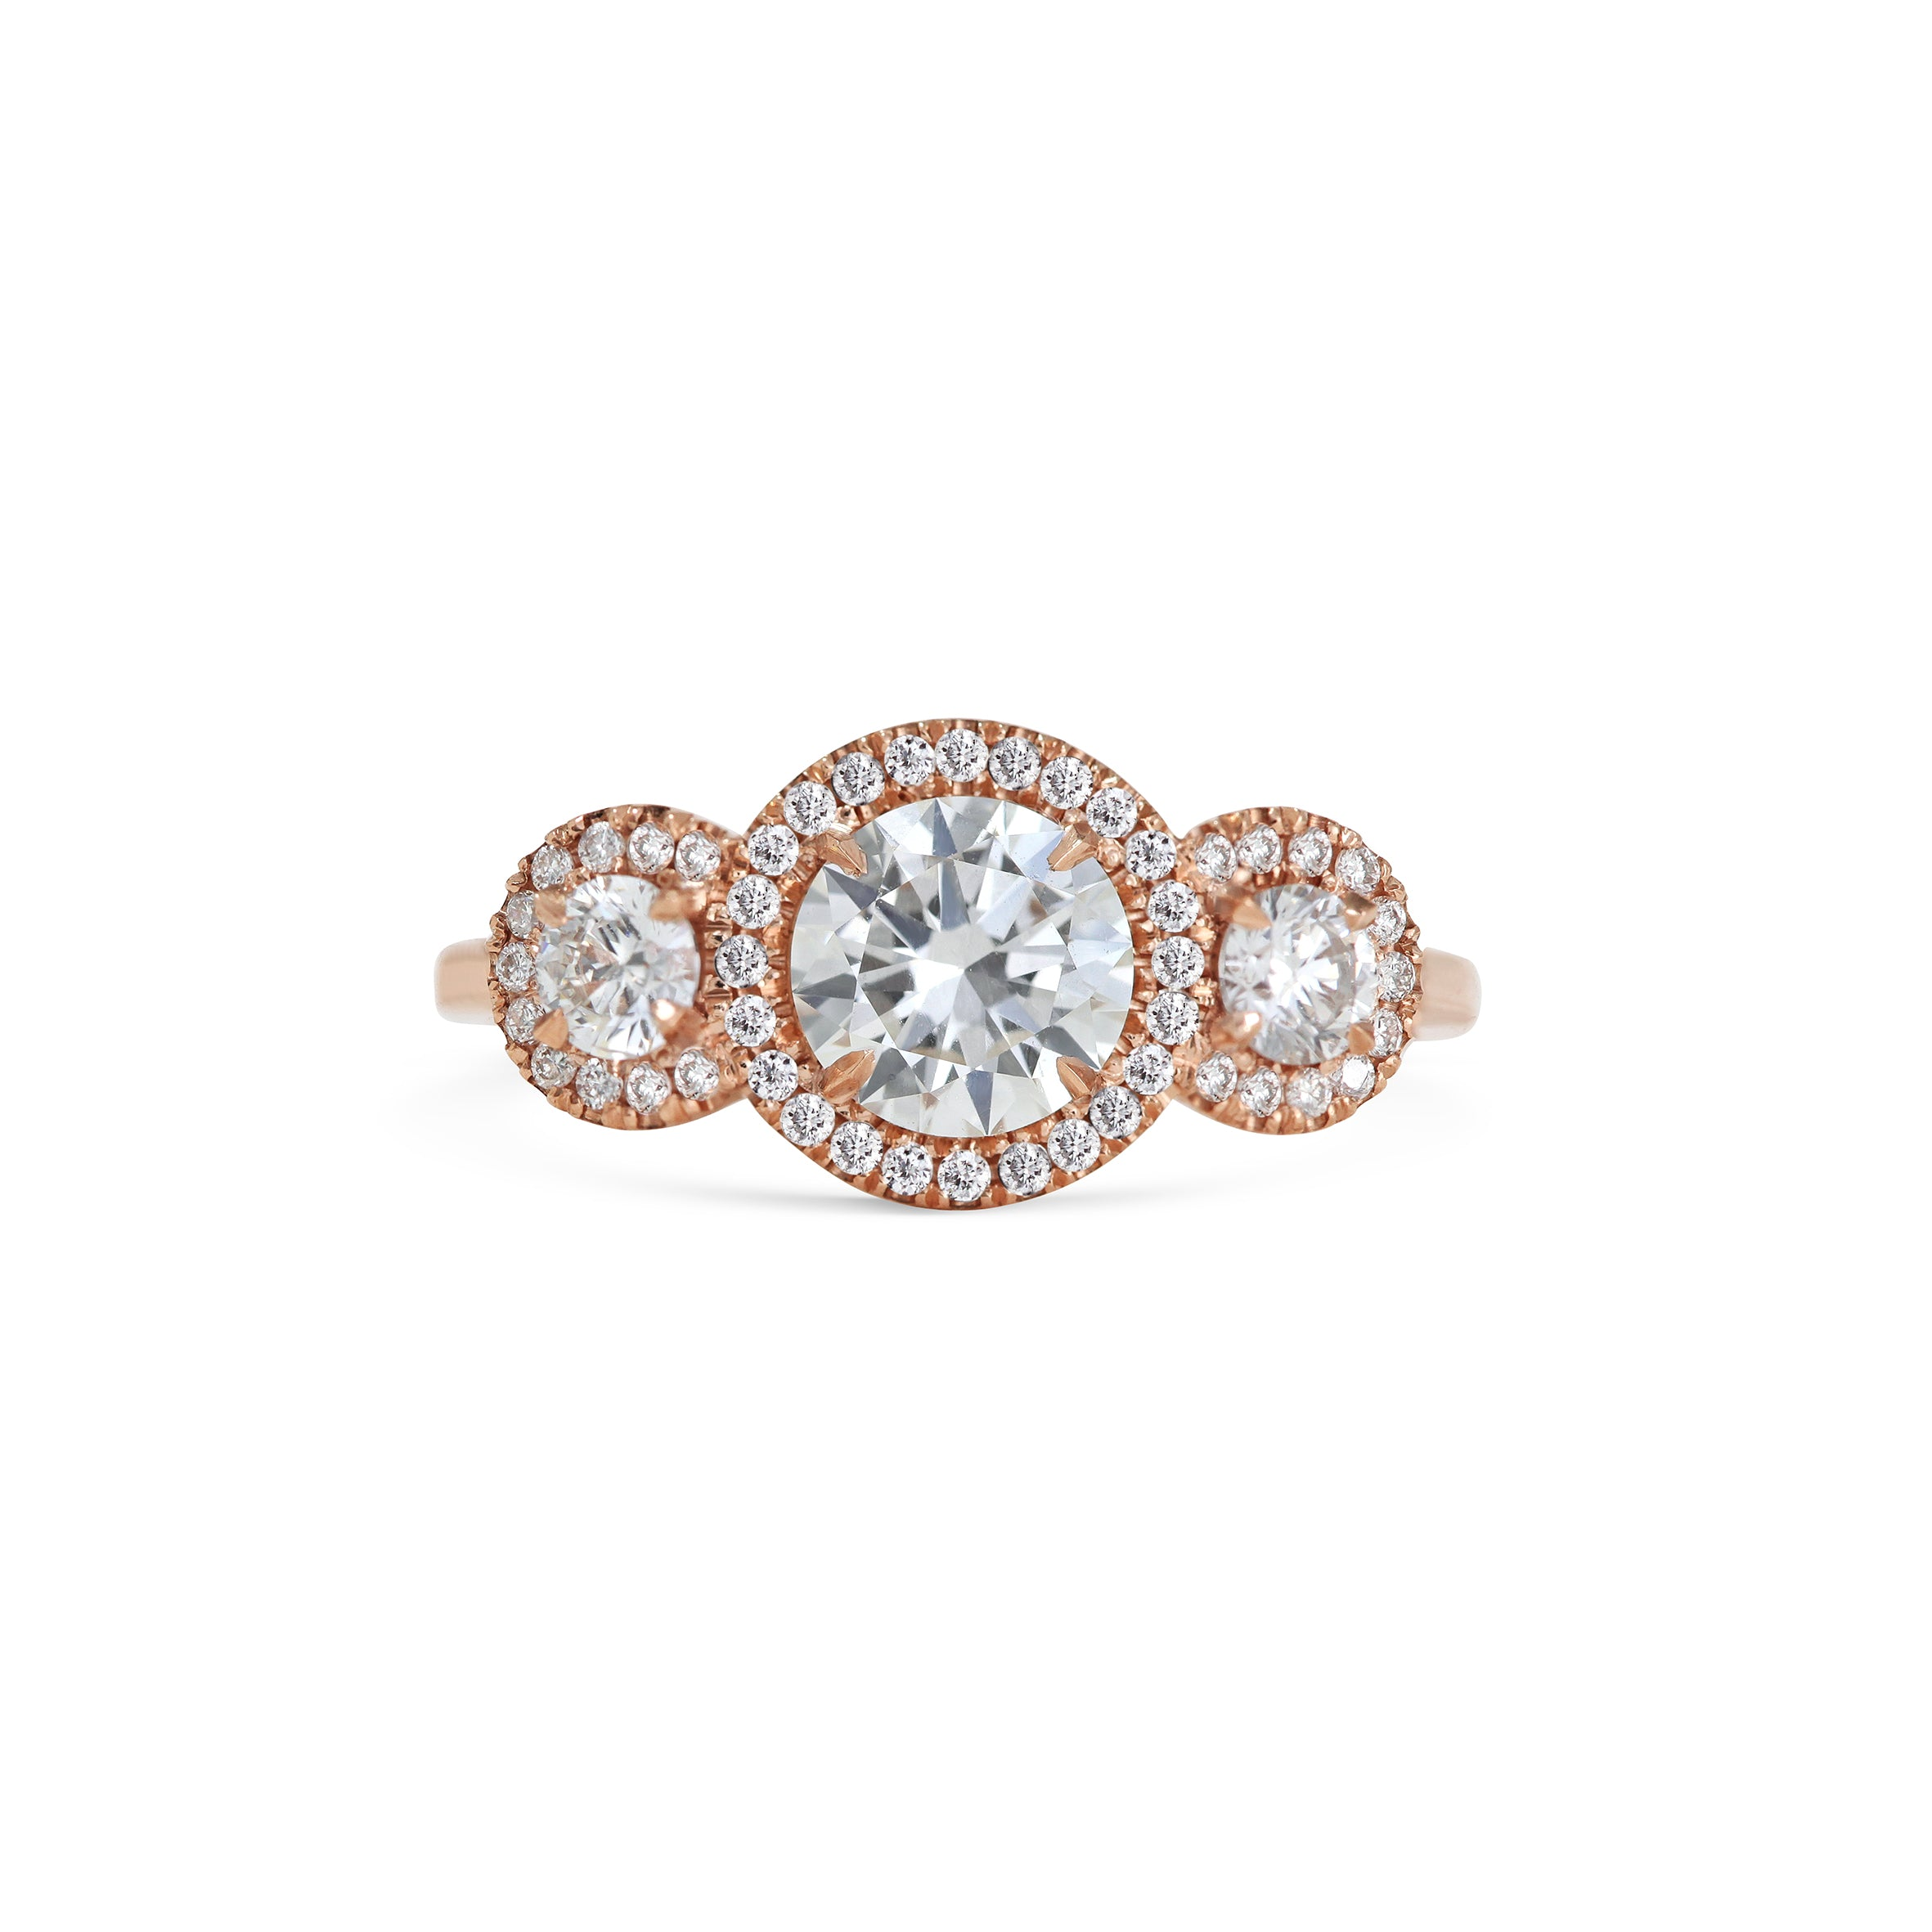 18ct Rose Gold Diamond Engagement Ring